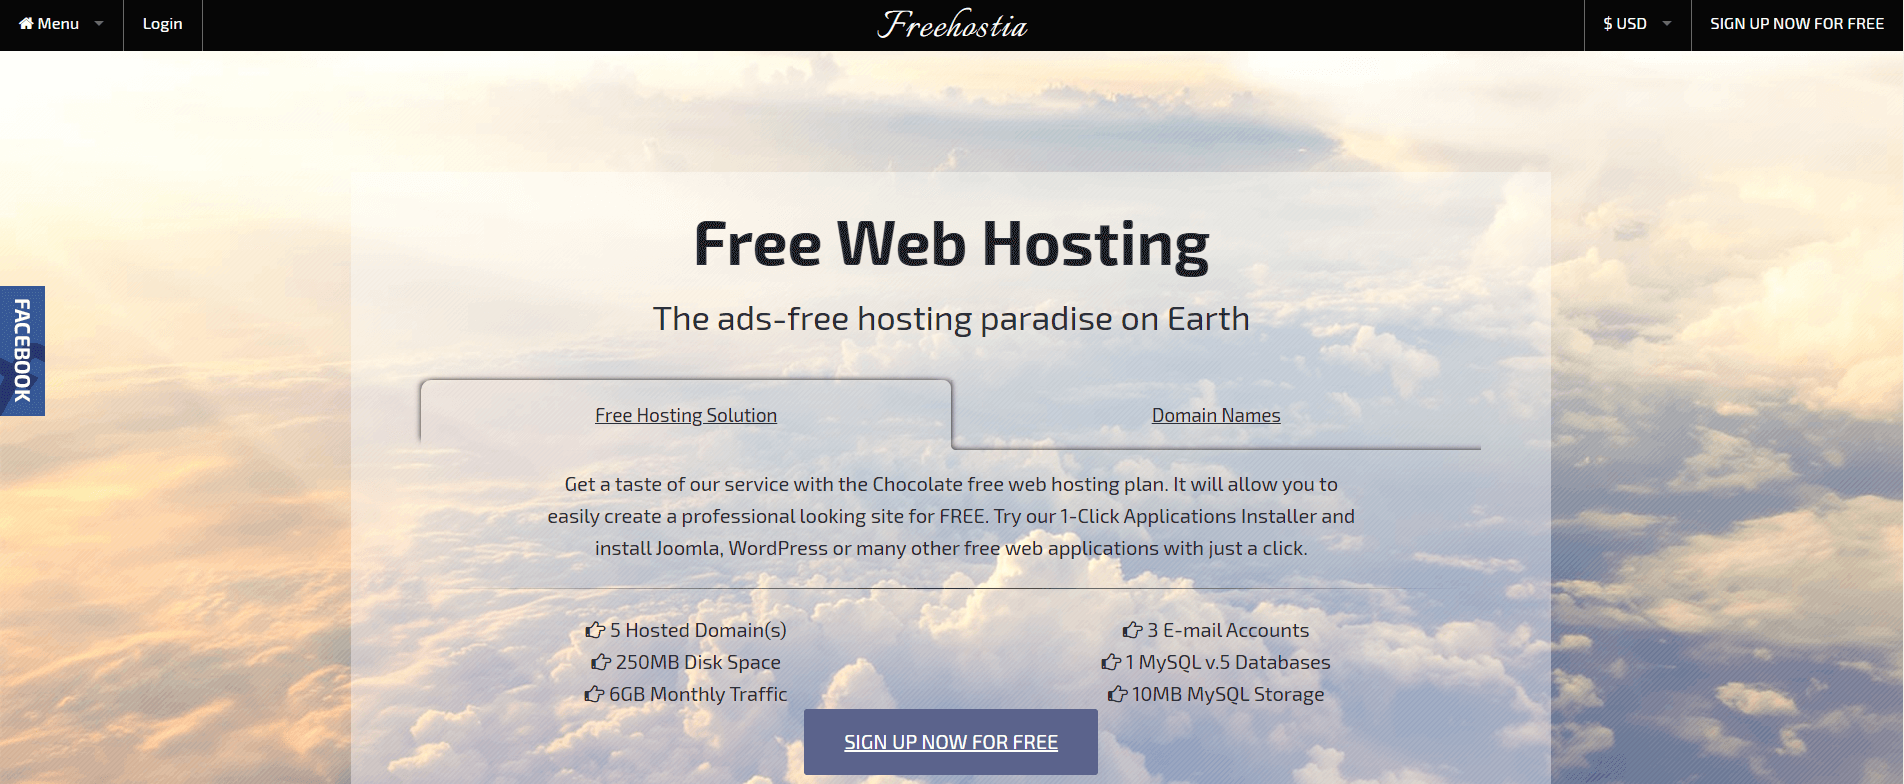 Free web hosting from Freehostia